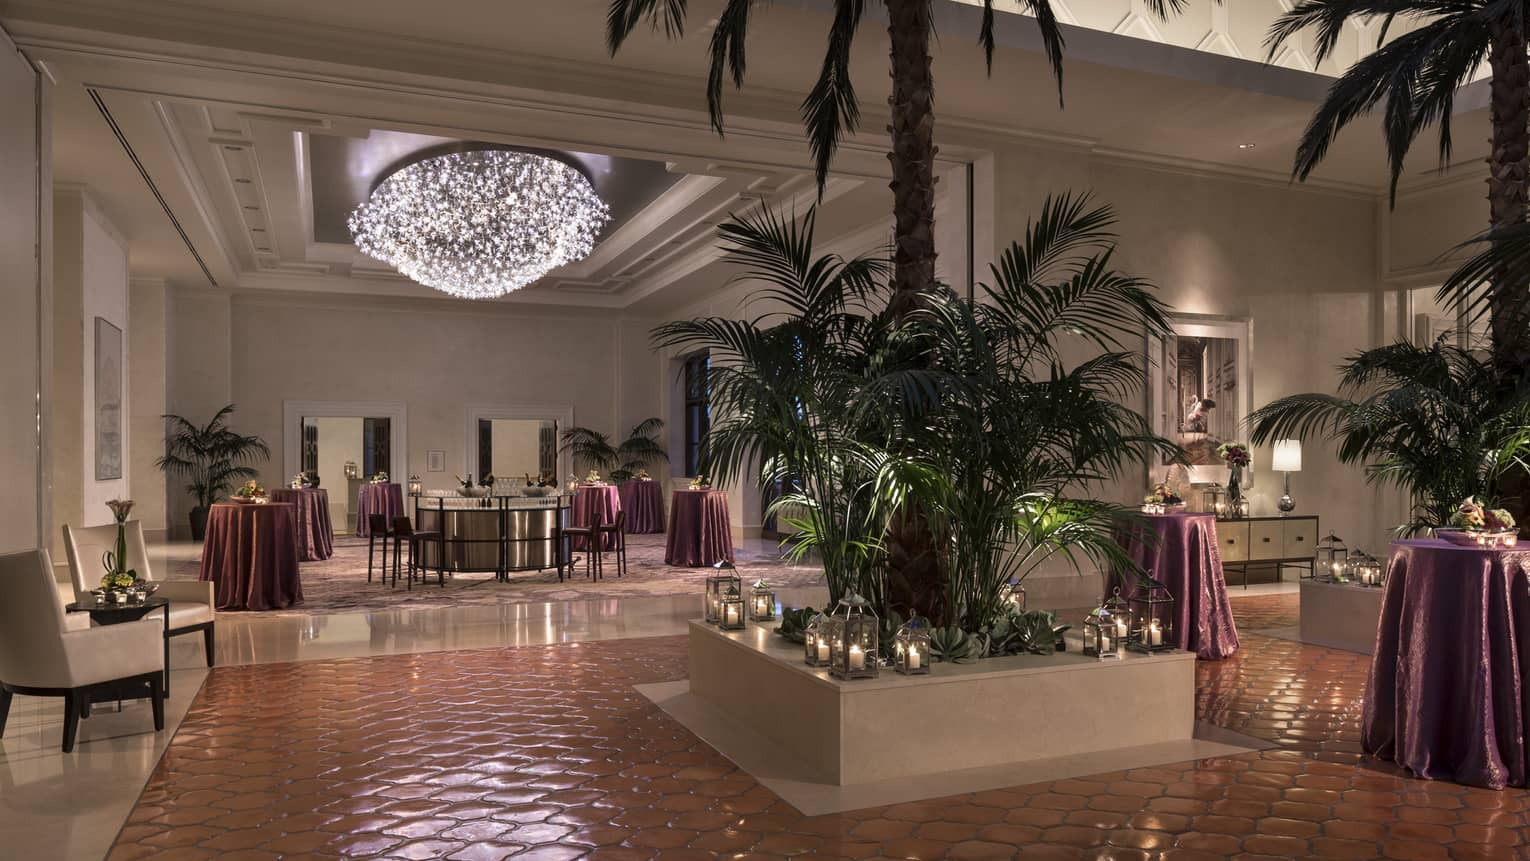 Grand Ballroom Foyer with potted palm trees and candles, cocktail lounge tables under light